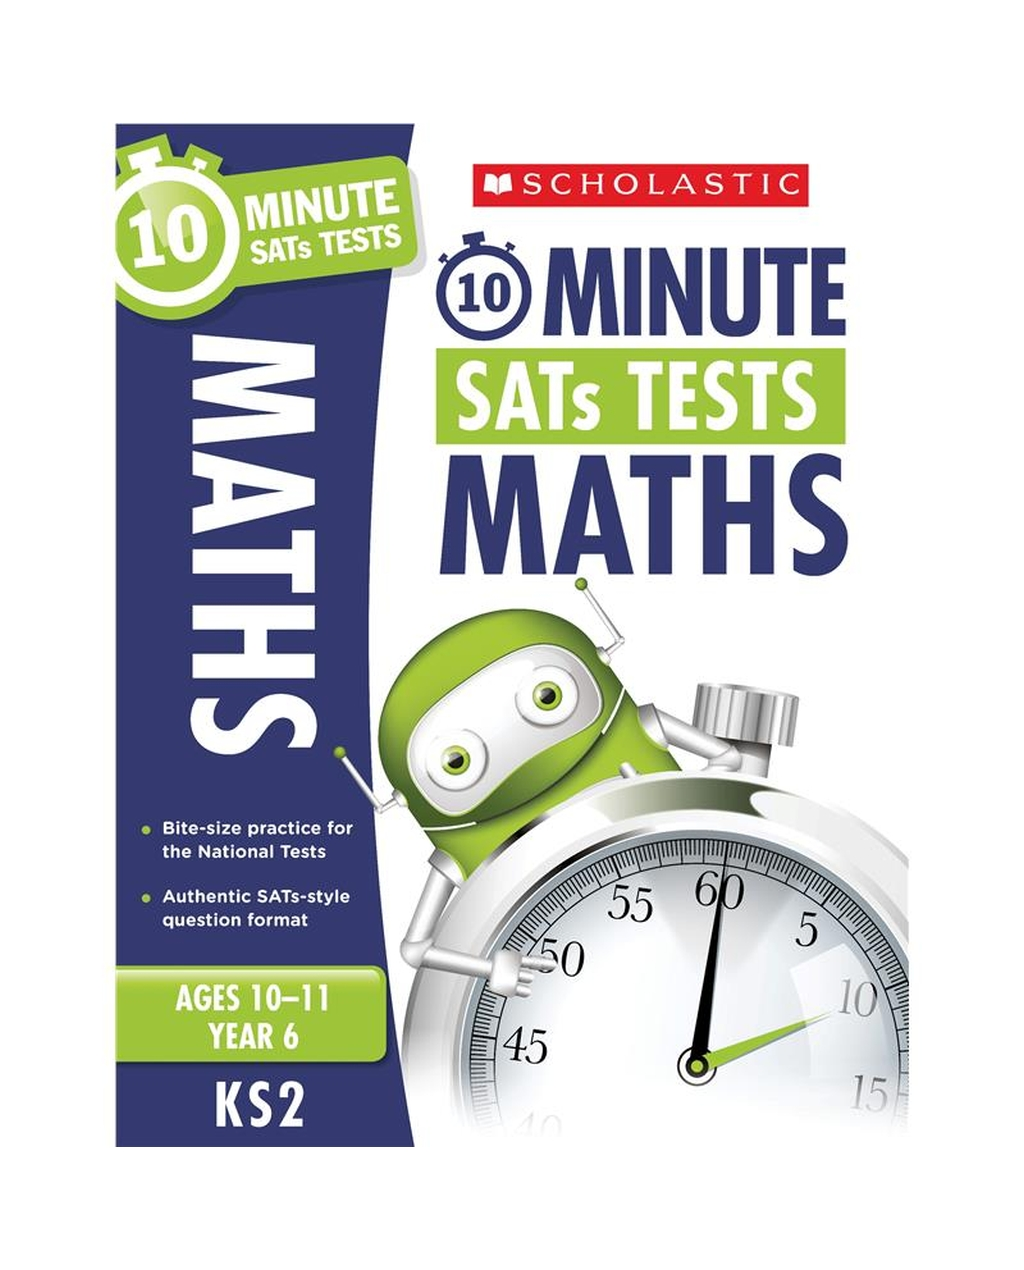 10-Minute SATs Tests: Maths - Year 6 x 30